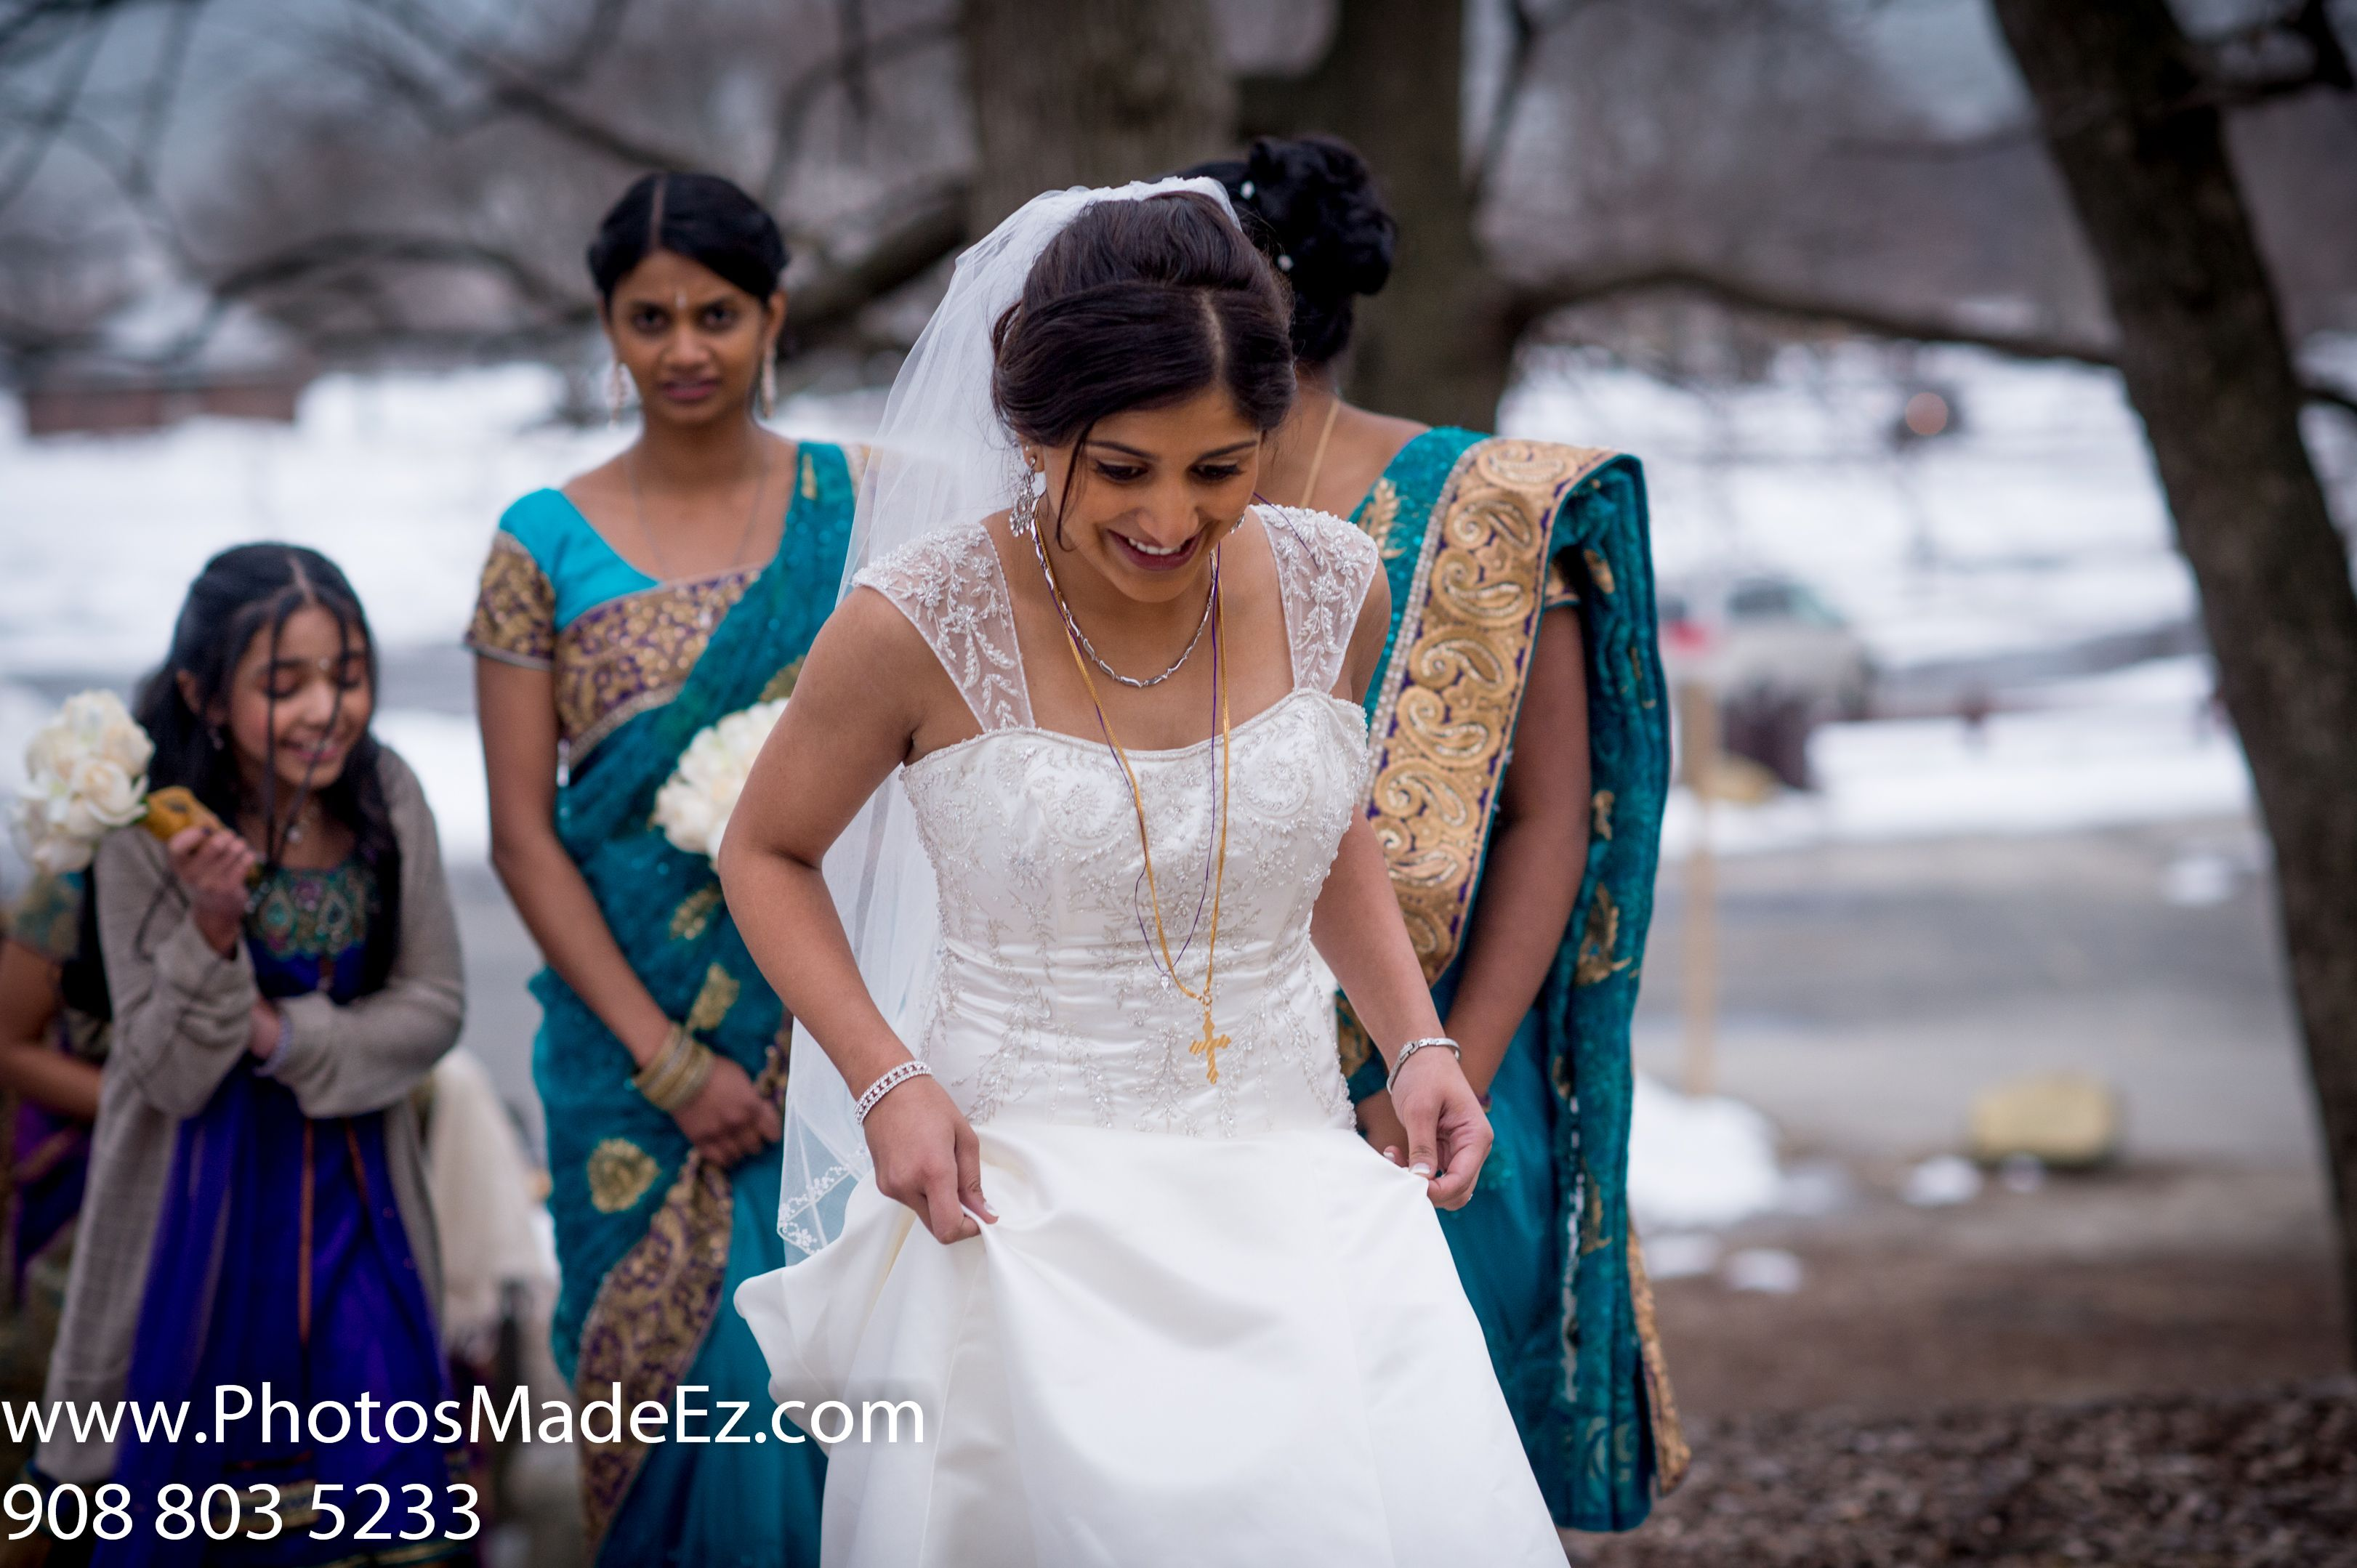 christian dating sites kerala Register in one of the most popular online dating sites for free here you can date, chat with single vibe line christian site kerala christian matrimonial sites.